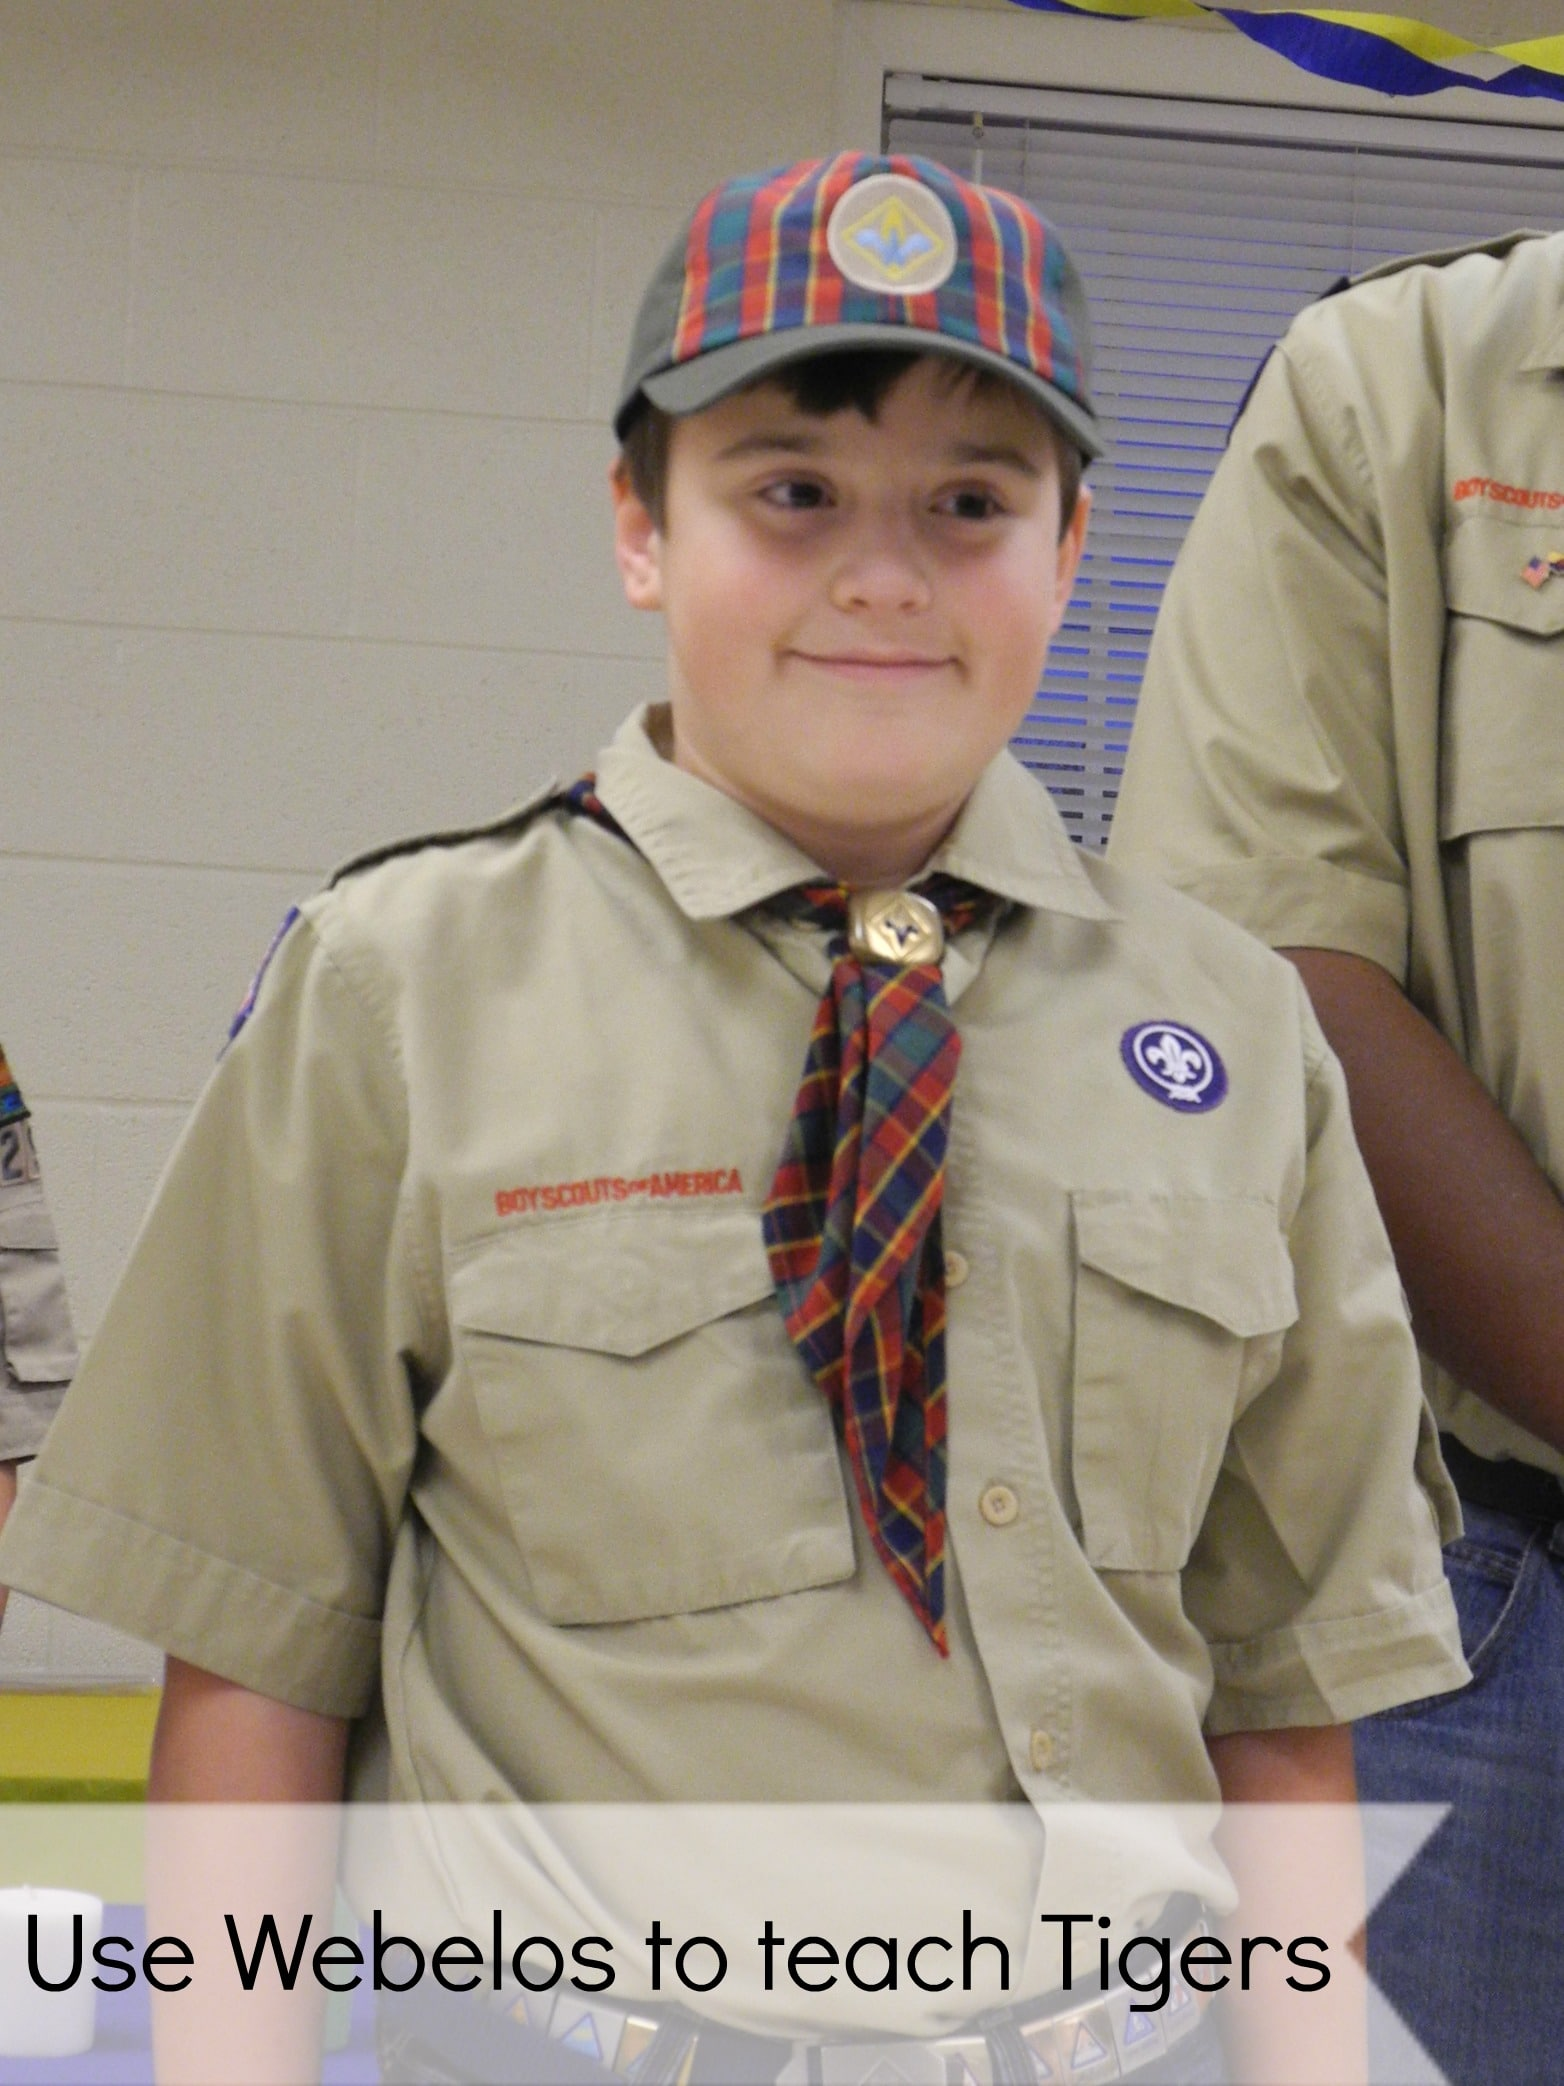 cub scout using webelos to teach tigers